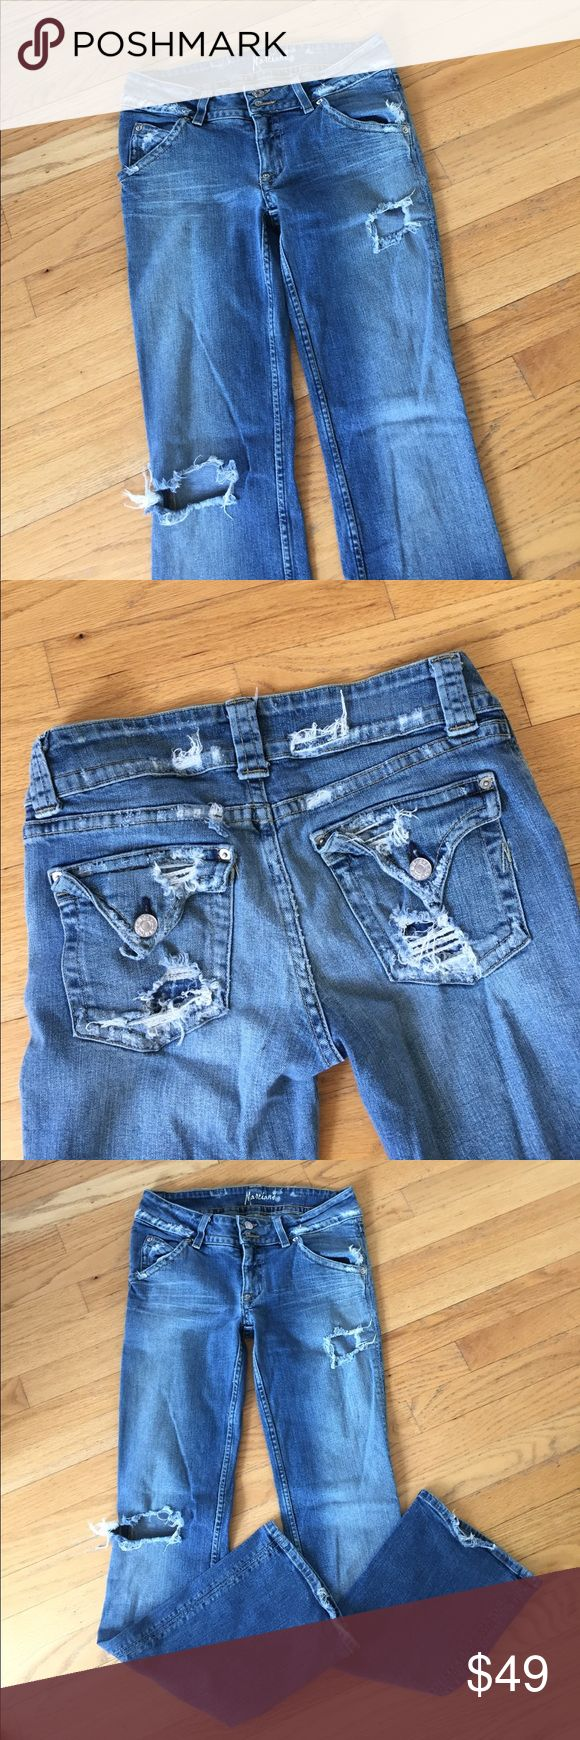 Guess Marciano Distressed Jeans Distressed Guess jeans with button back pockets. Size 31 inseam 33. Guess by Marciano Jeans